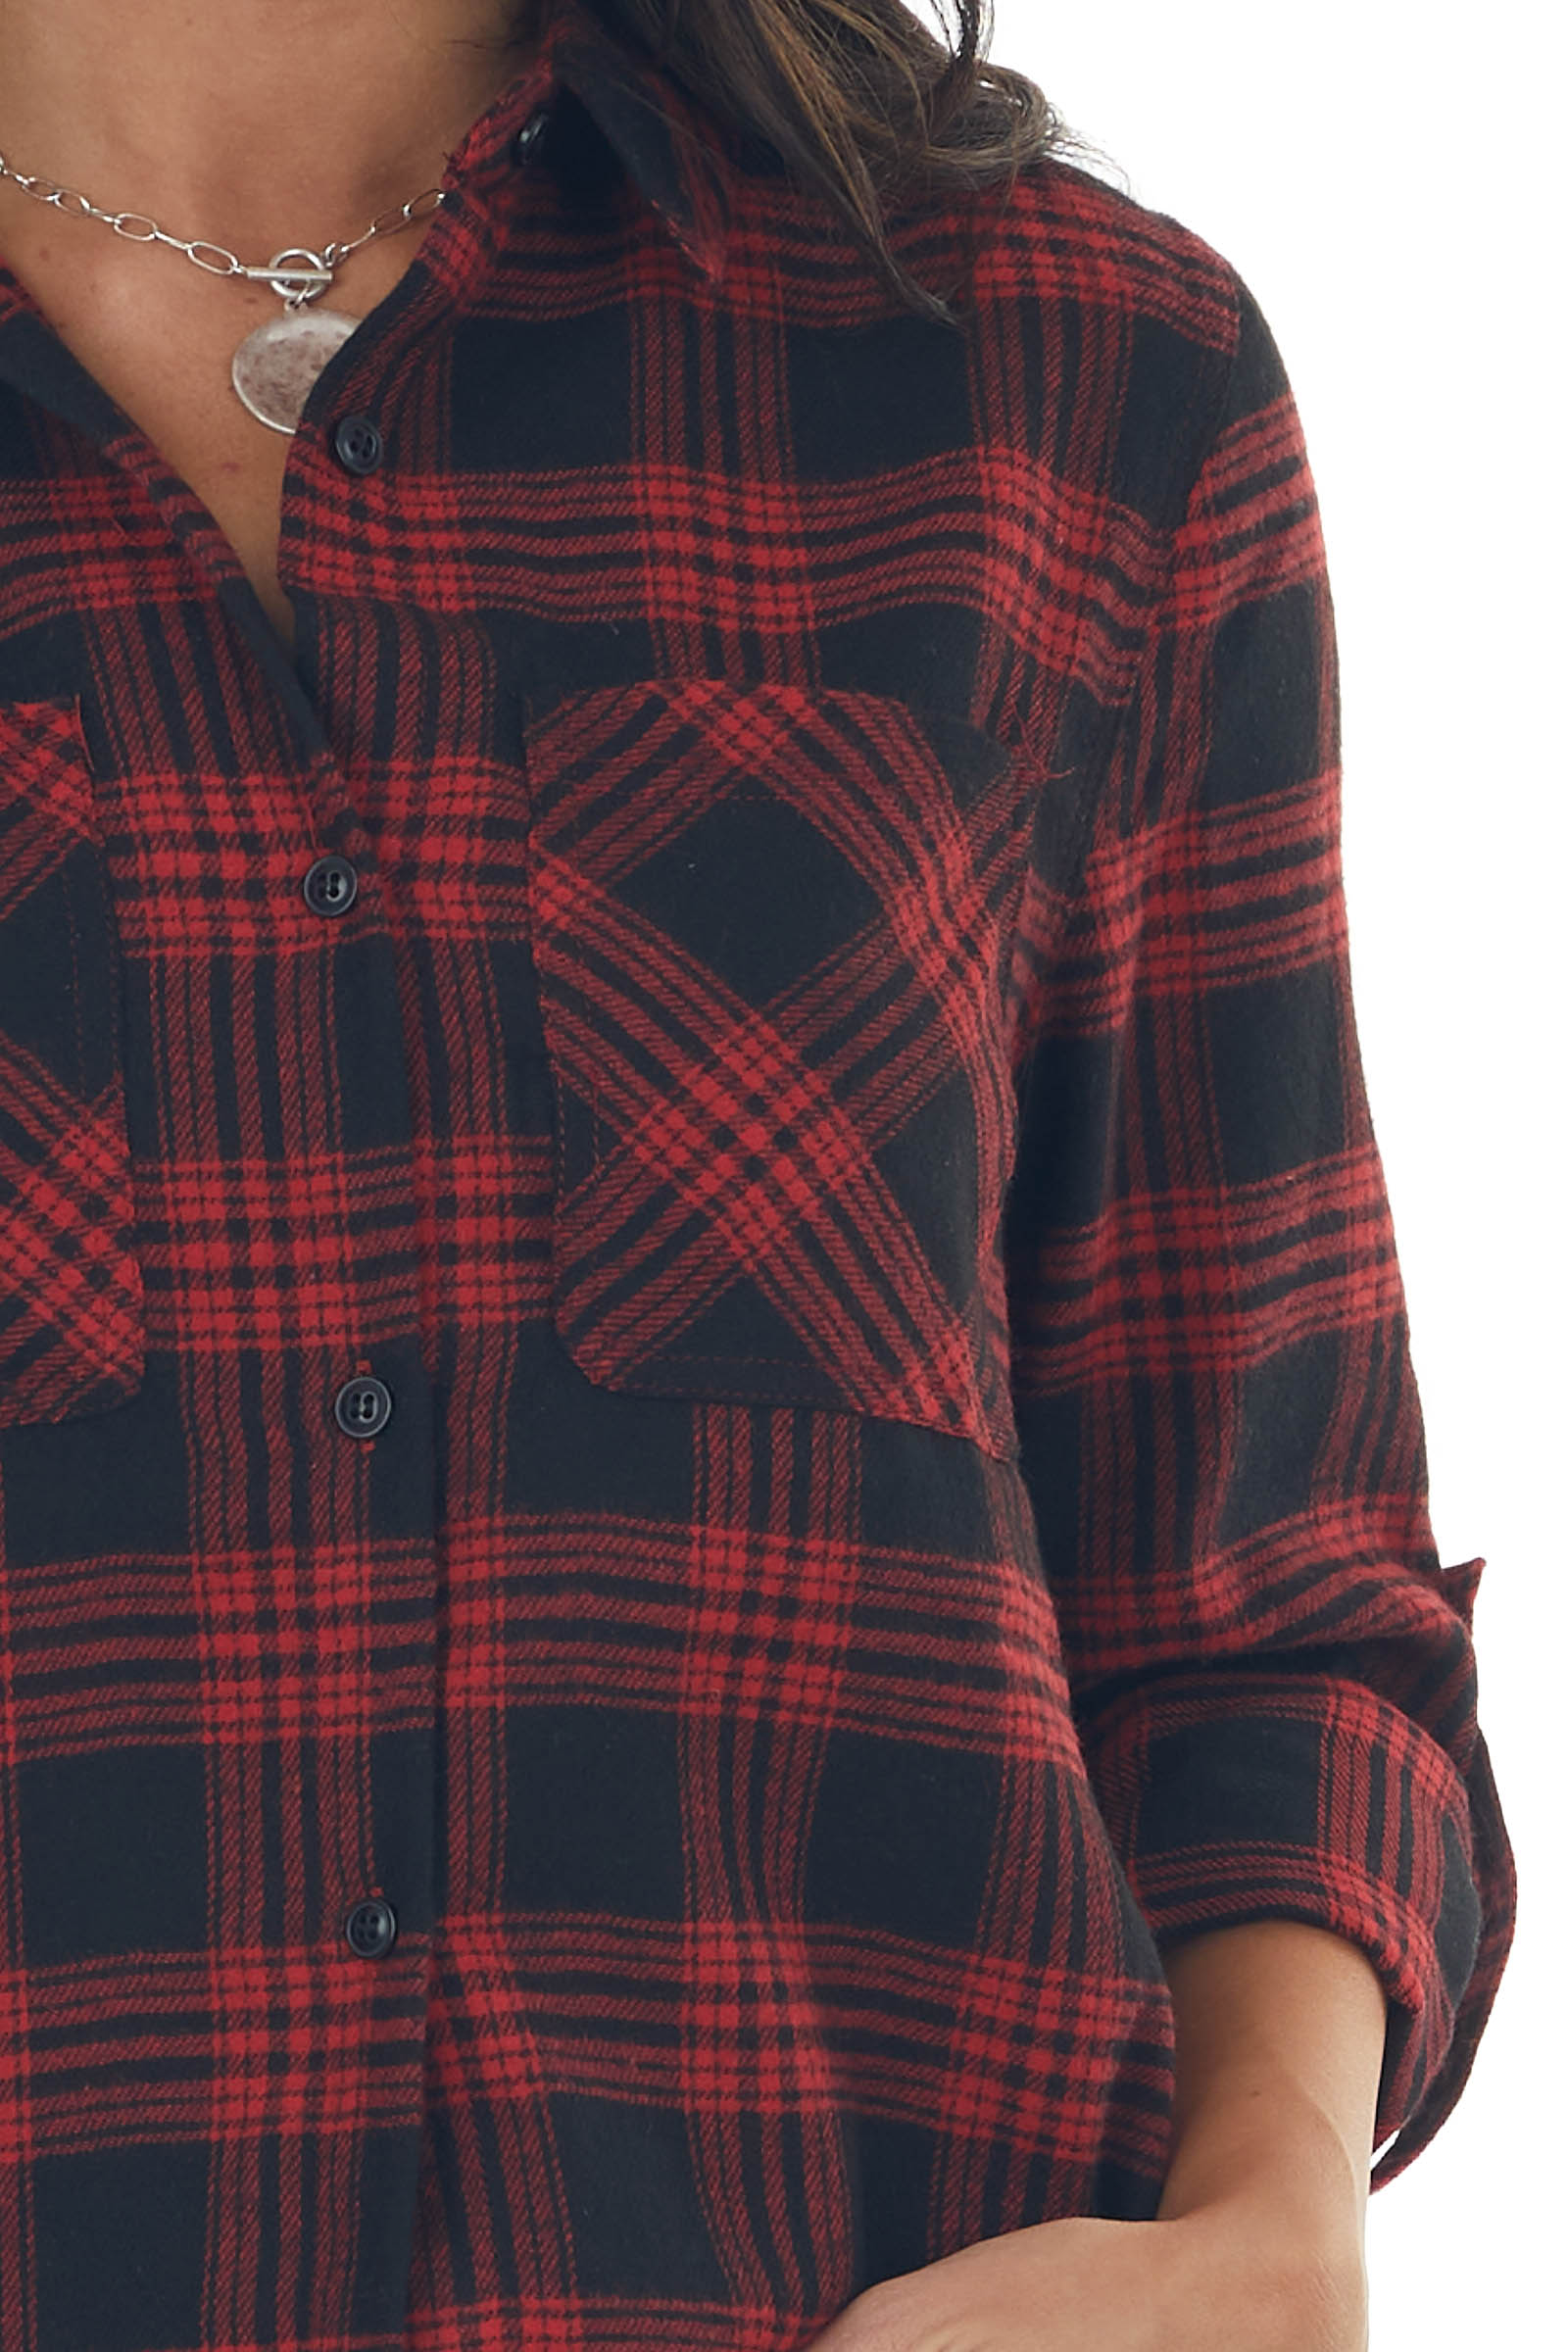 Red and Black Plaid Button Down Woven Top